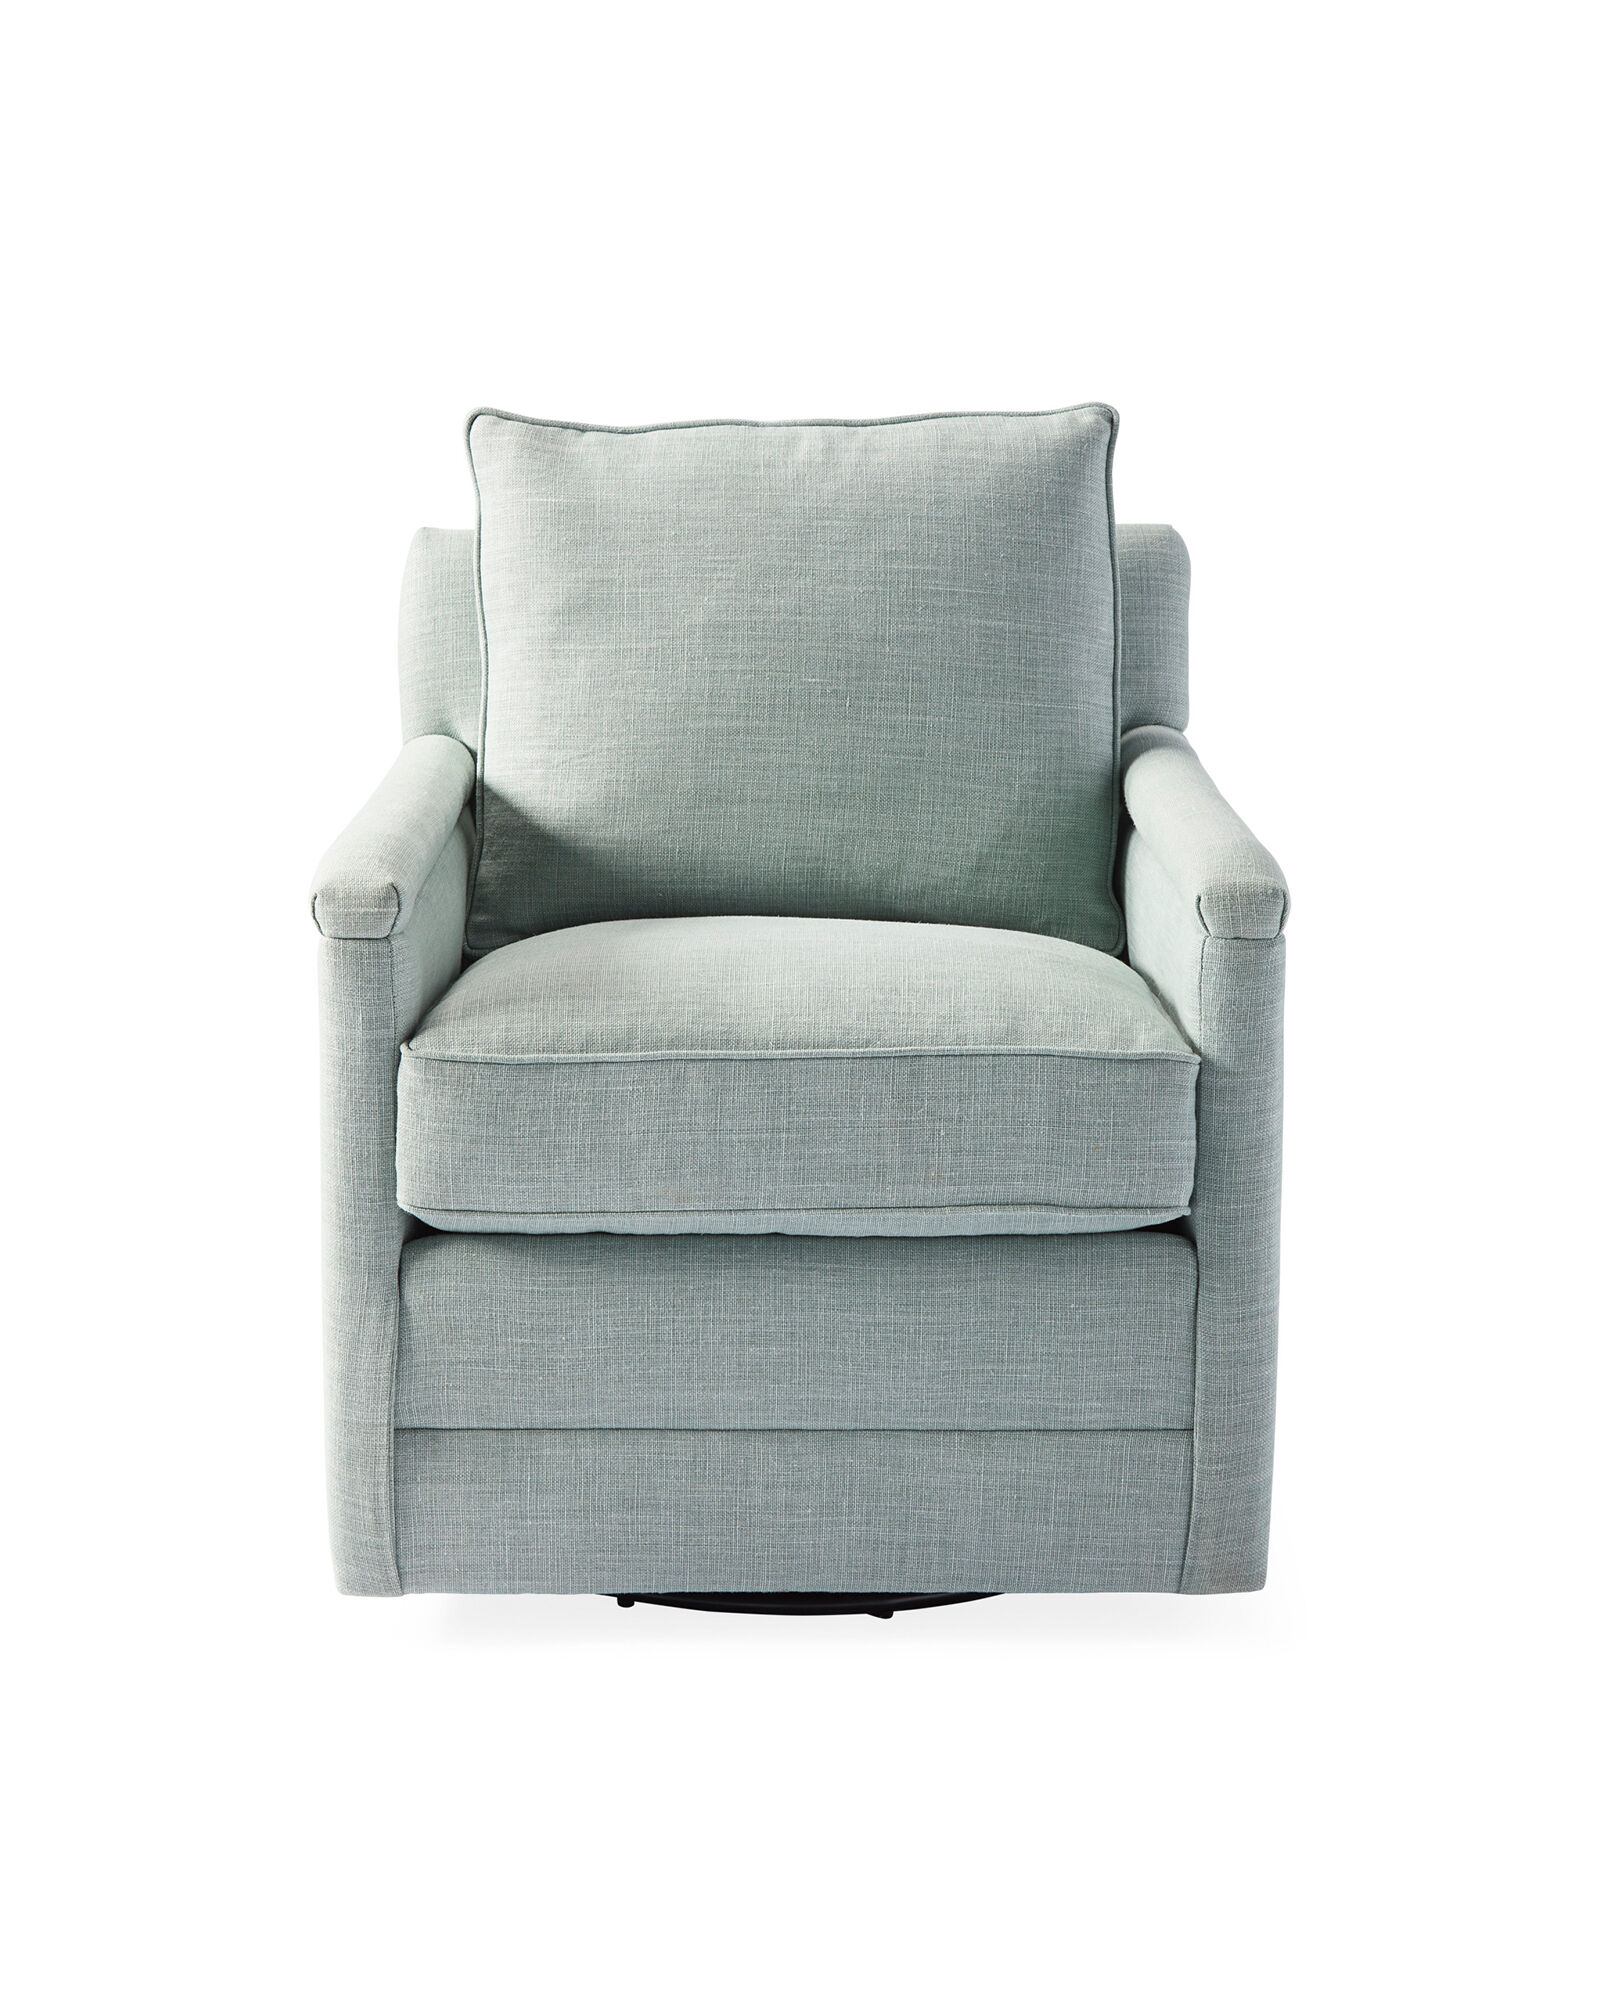 Spruce Street Swivel Chair - Seaglass Washed Linen